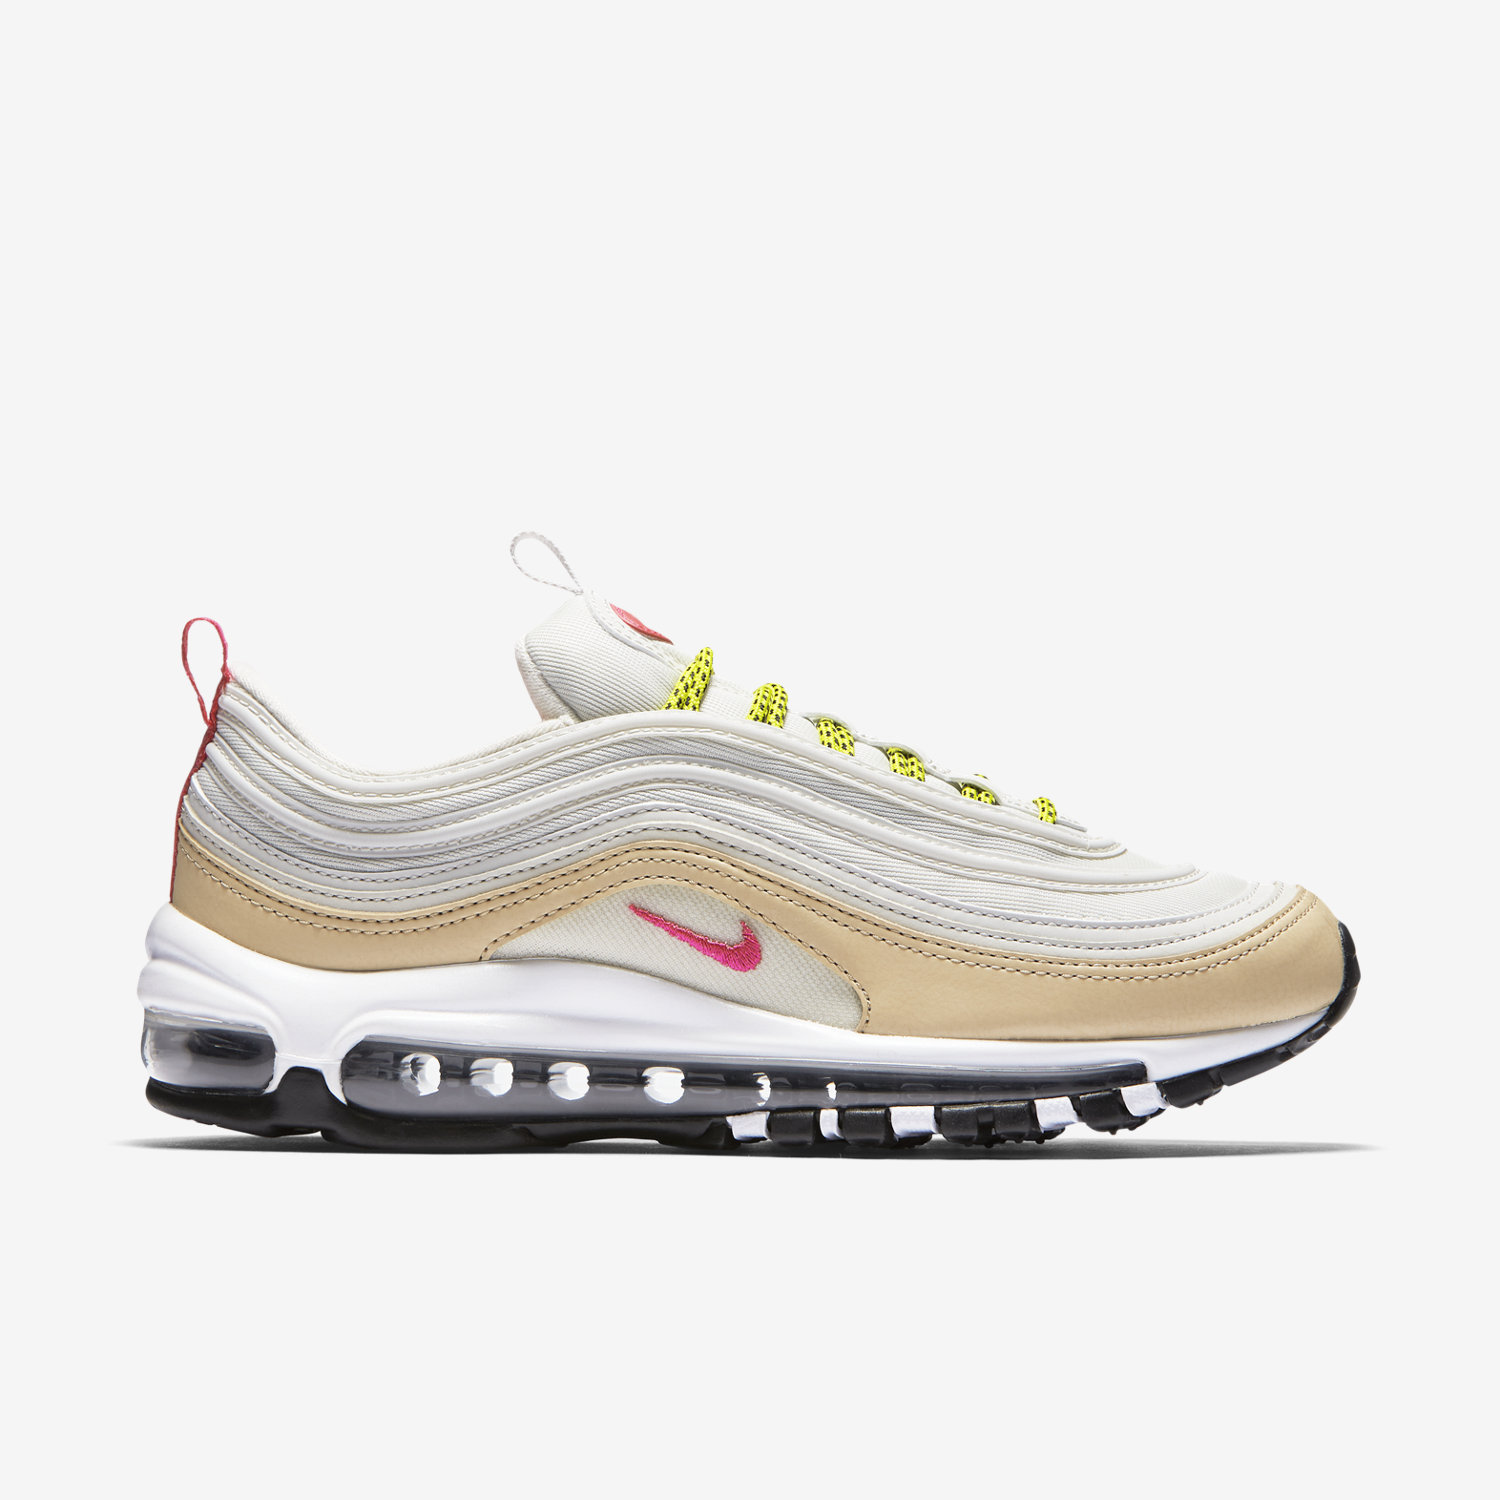 purple and silver Cheap Air max 97 University of Guam